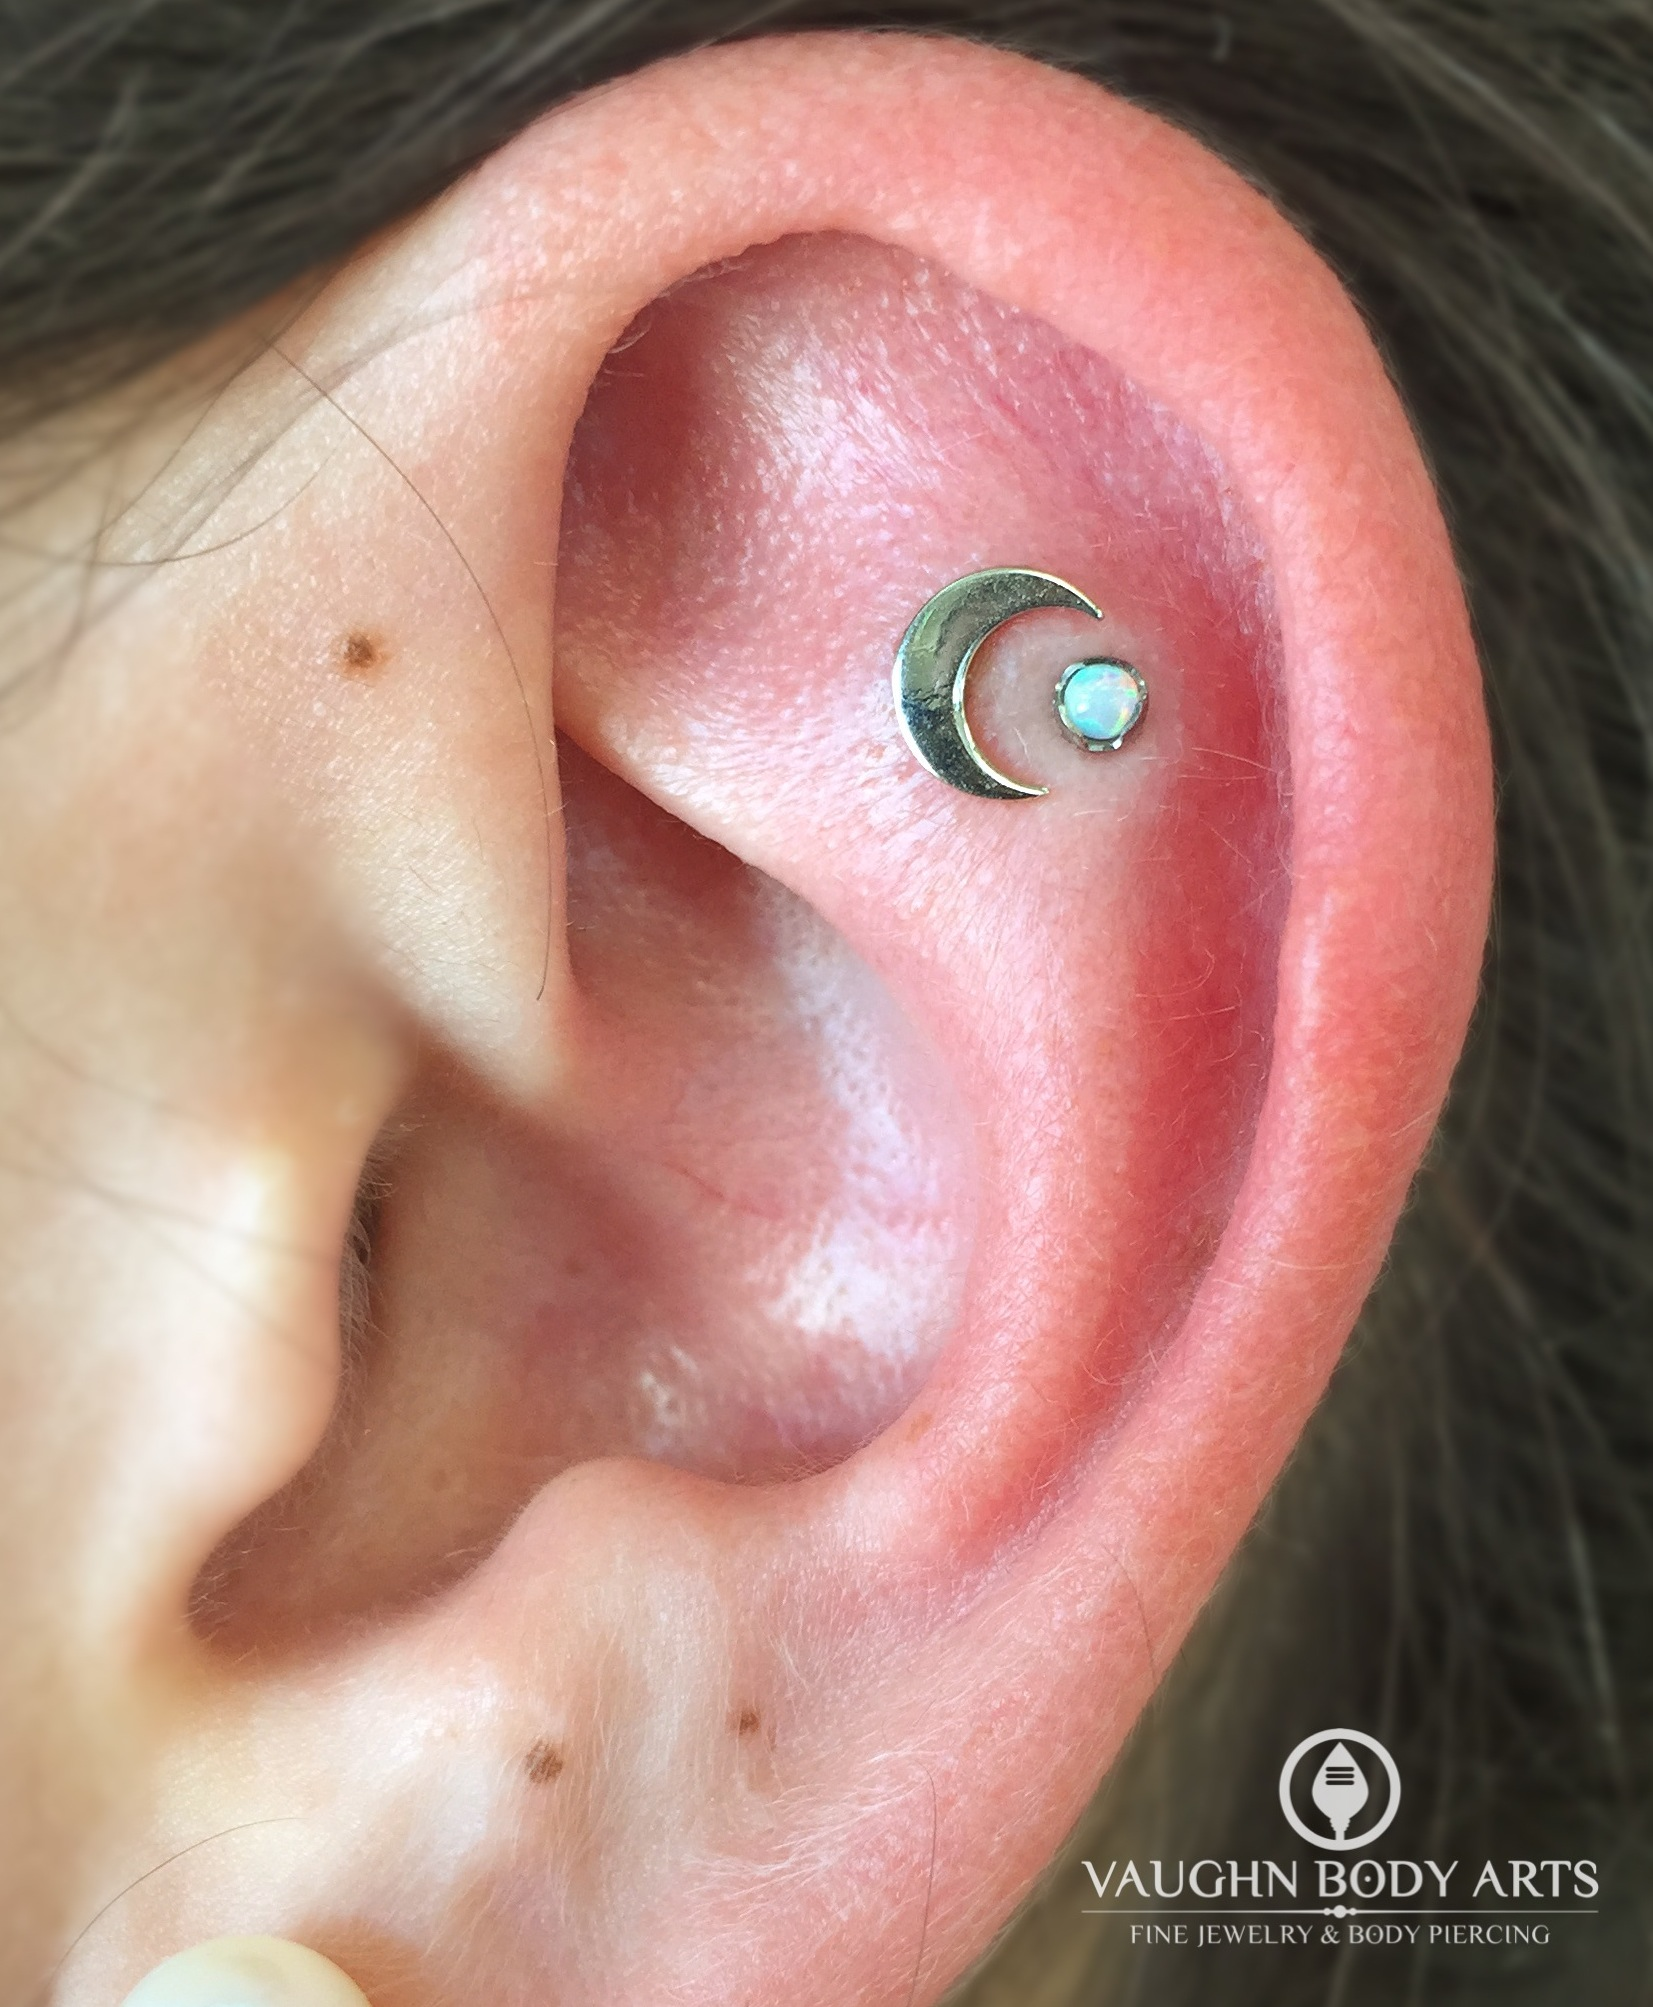 Helix piercings with an 18k white gold crescent moon and titanium jewelry from Anatometal.